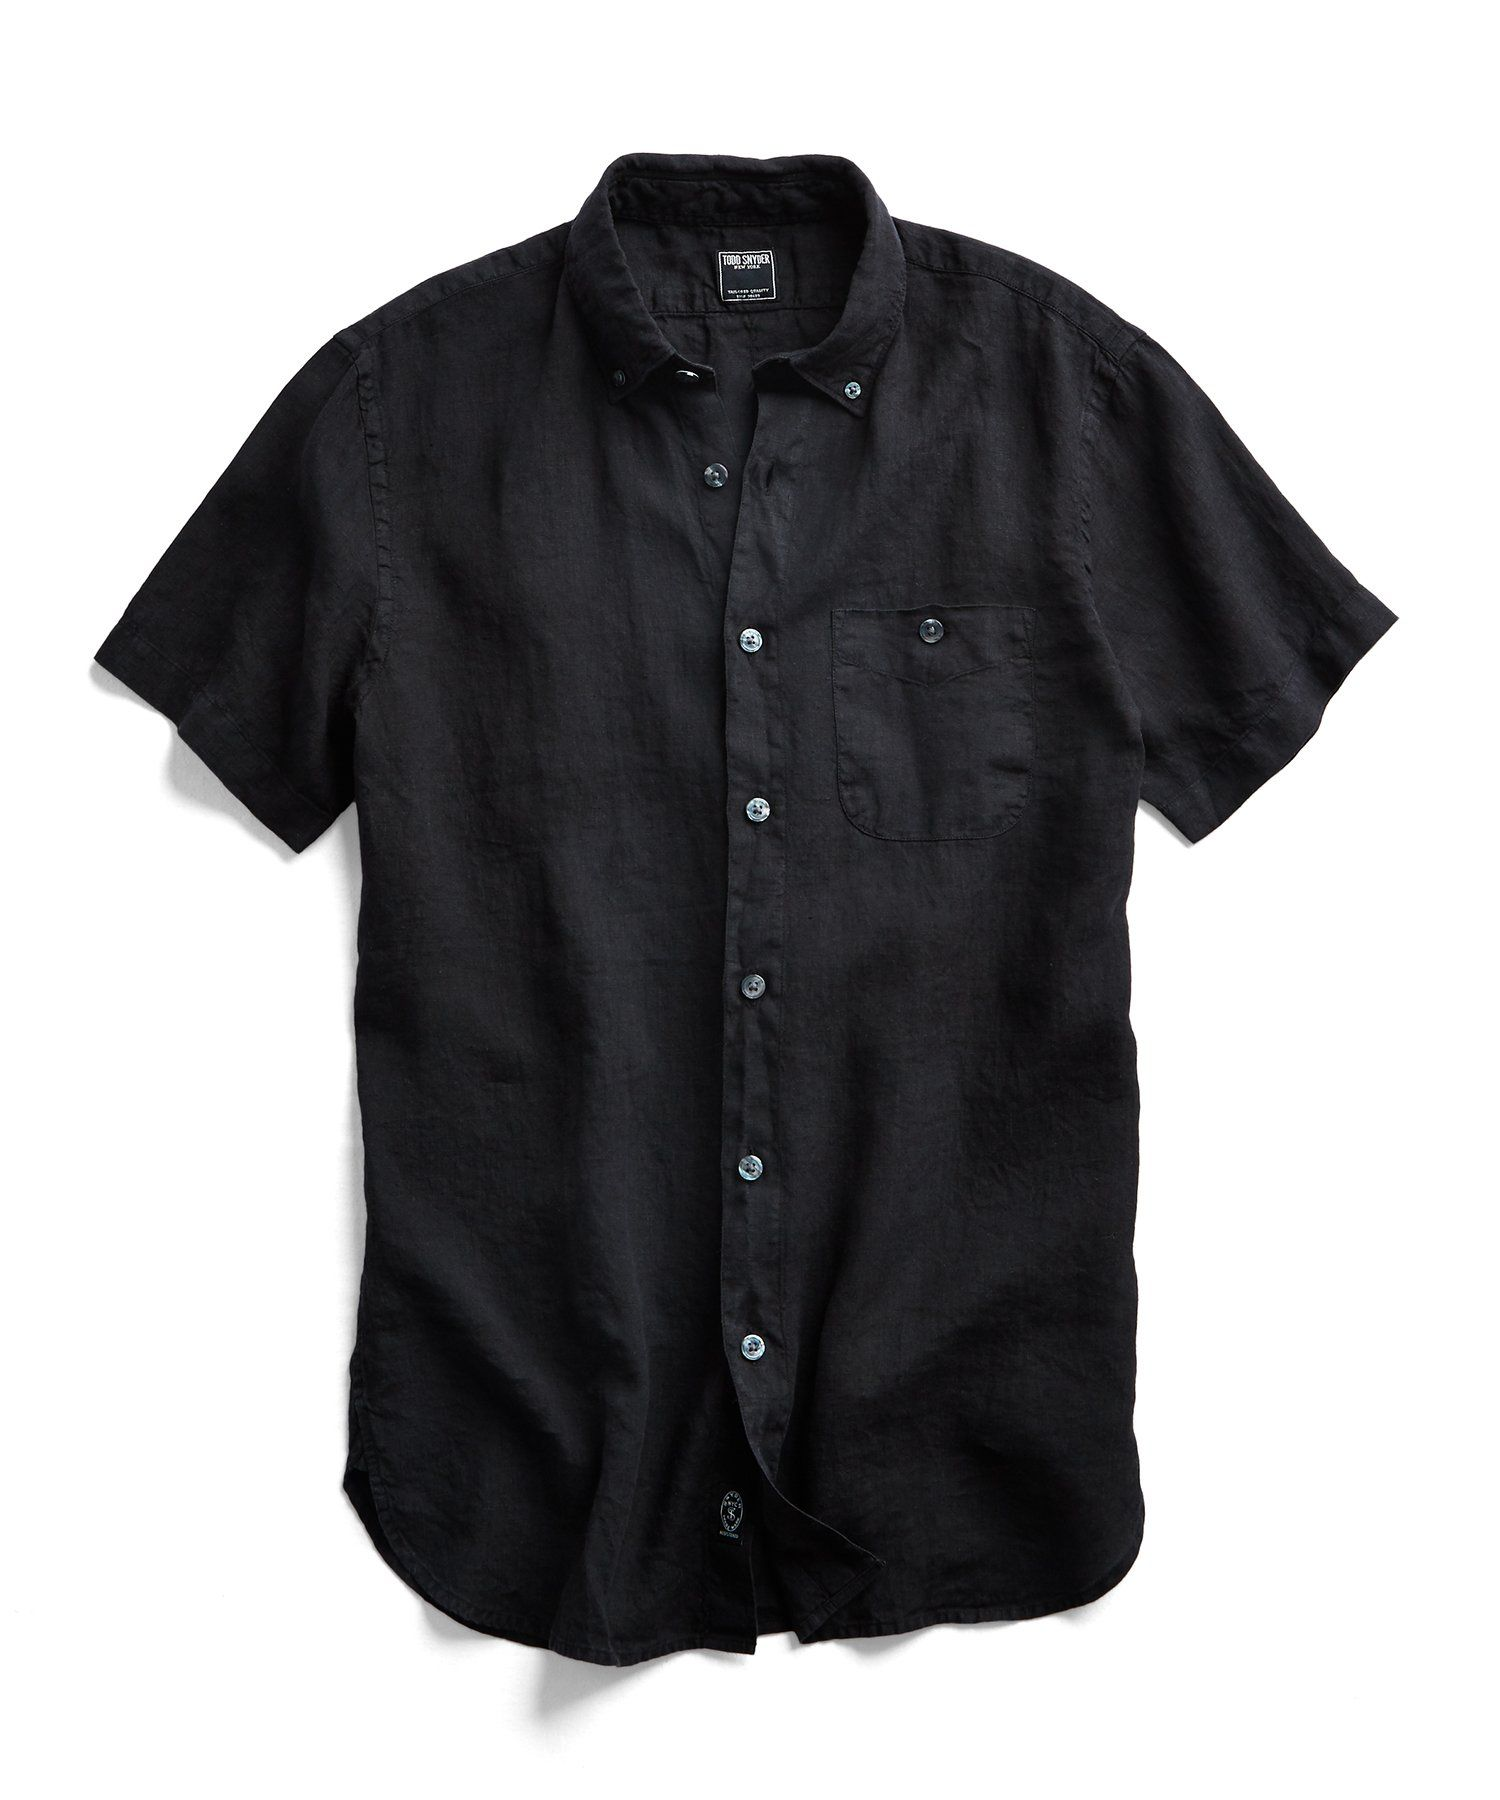 Realdo Mens Shirt Summer Casual Solid Short Sleeve Button Down T-Shirt Top Blouse